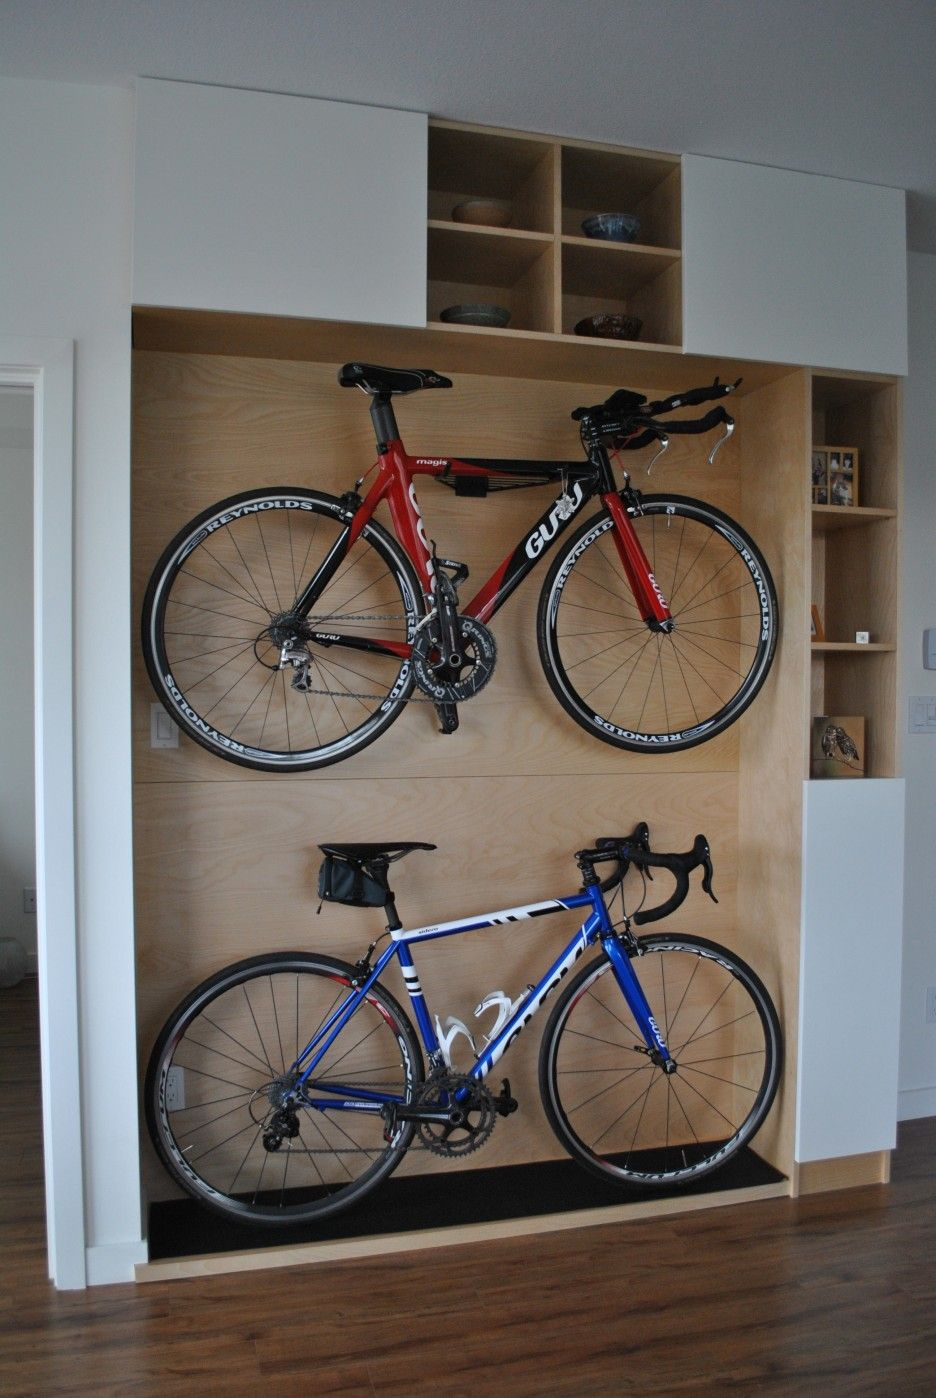 Excellent Wooden Platform Design For Home Bikes Storage ...